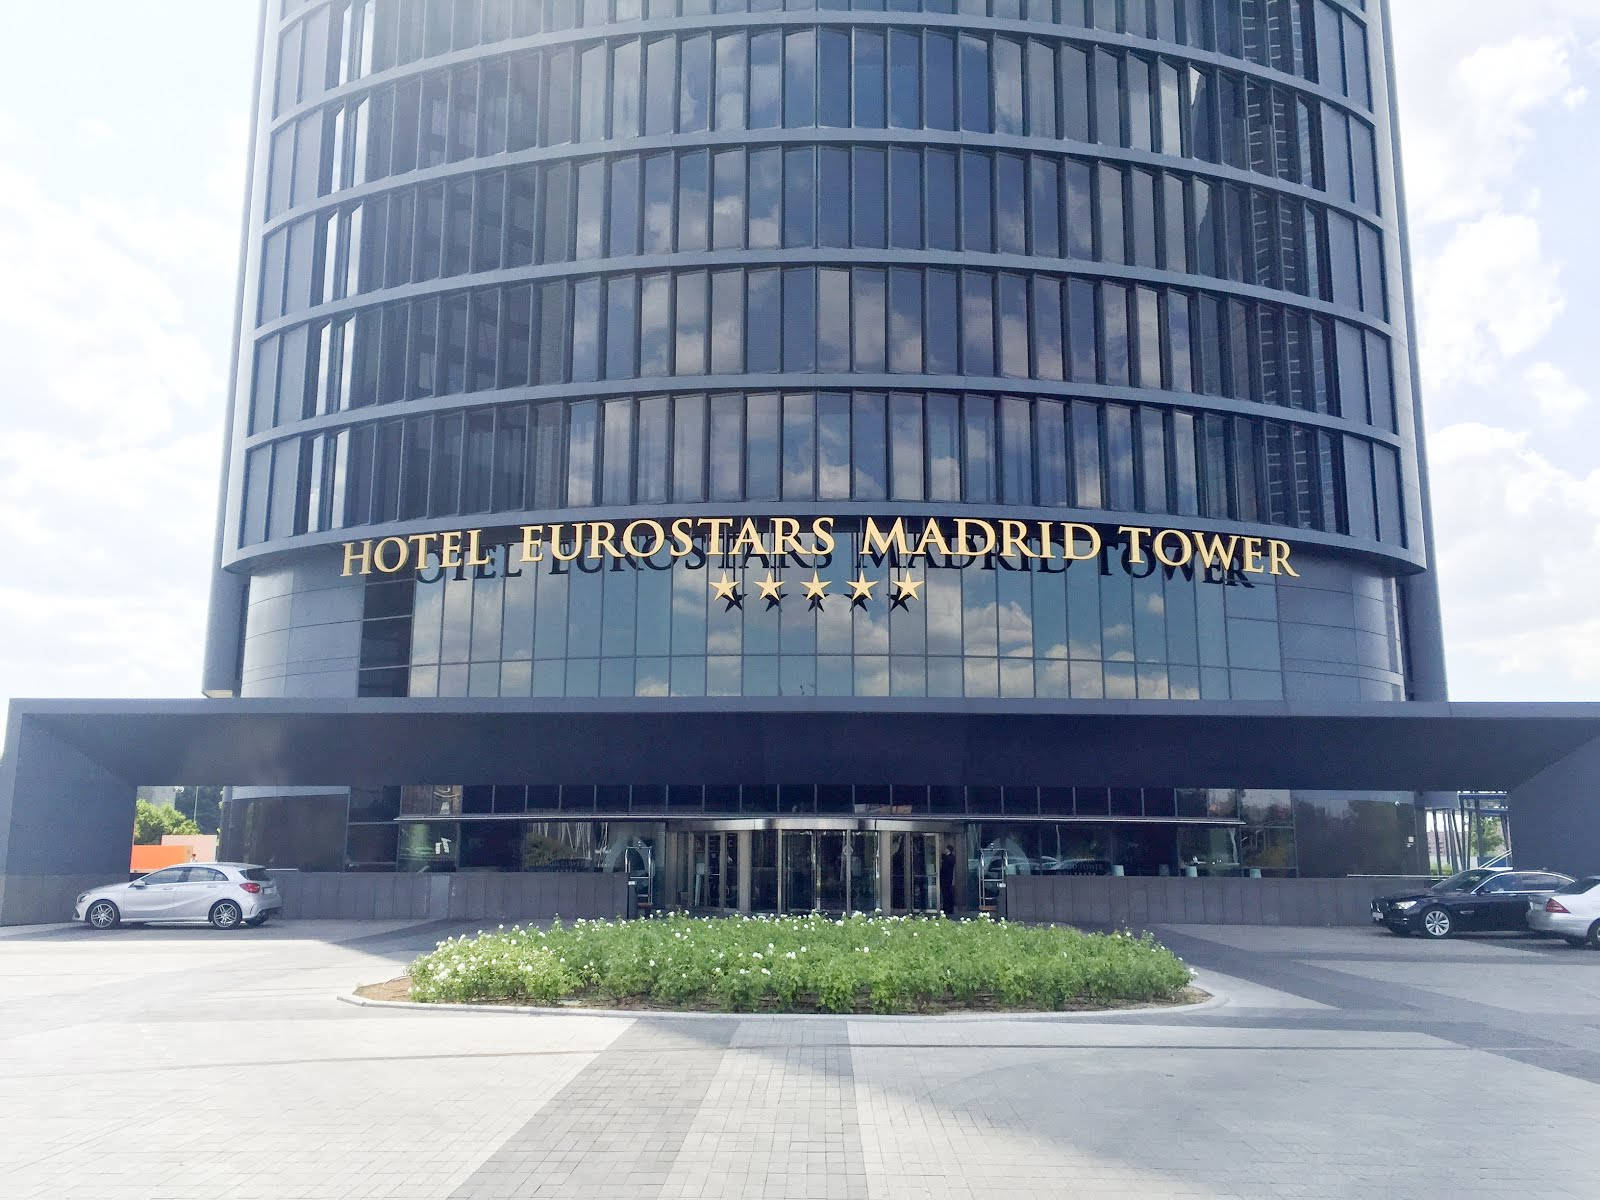 Entrada Eurostars Madrid Tower